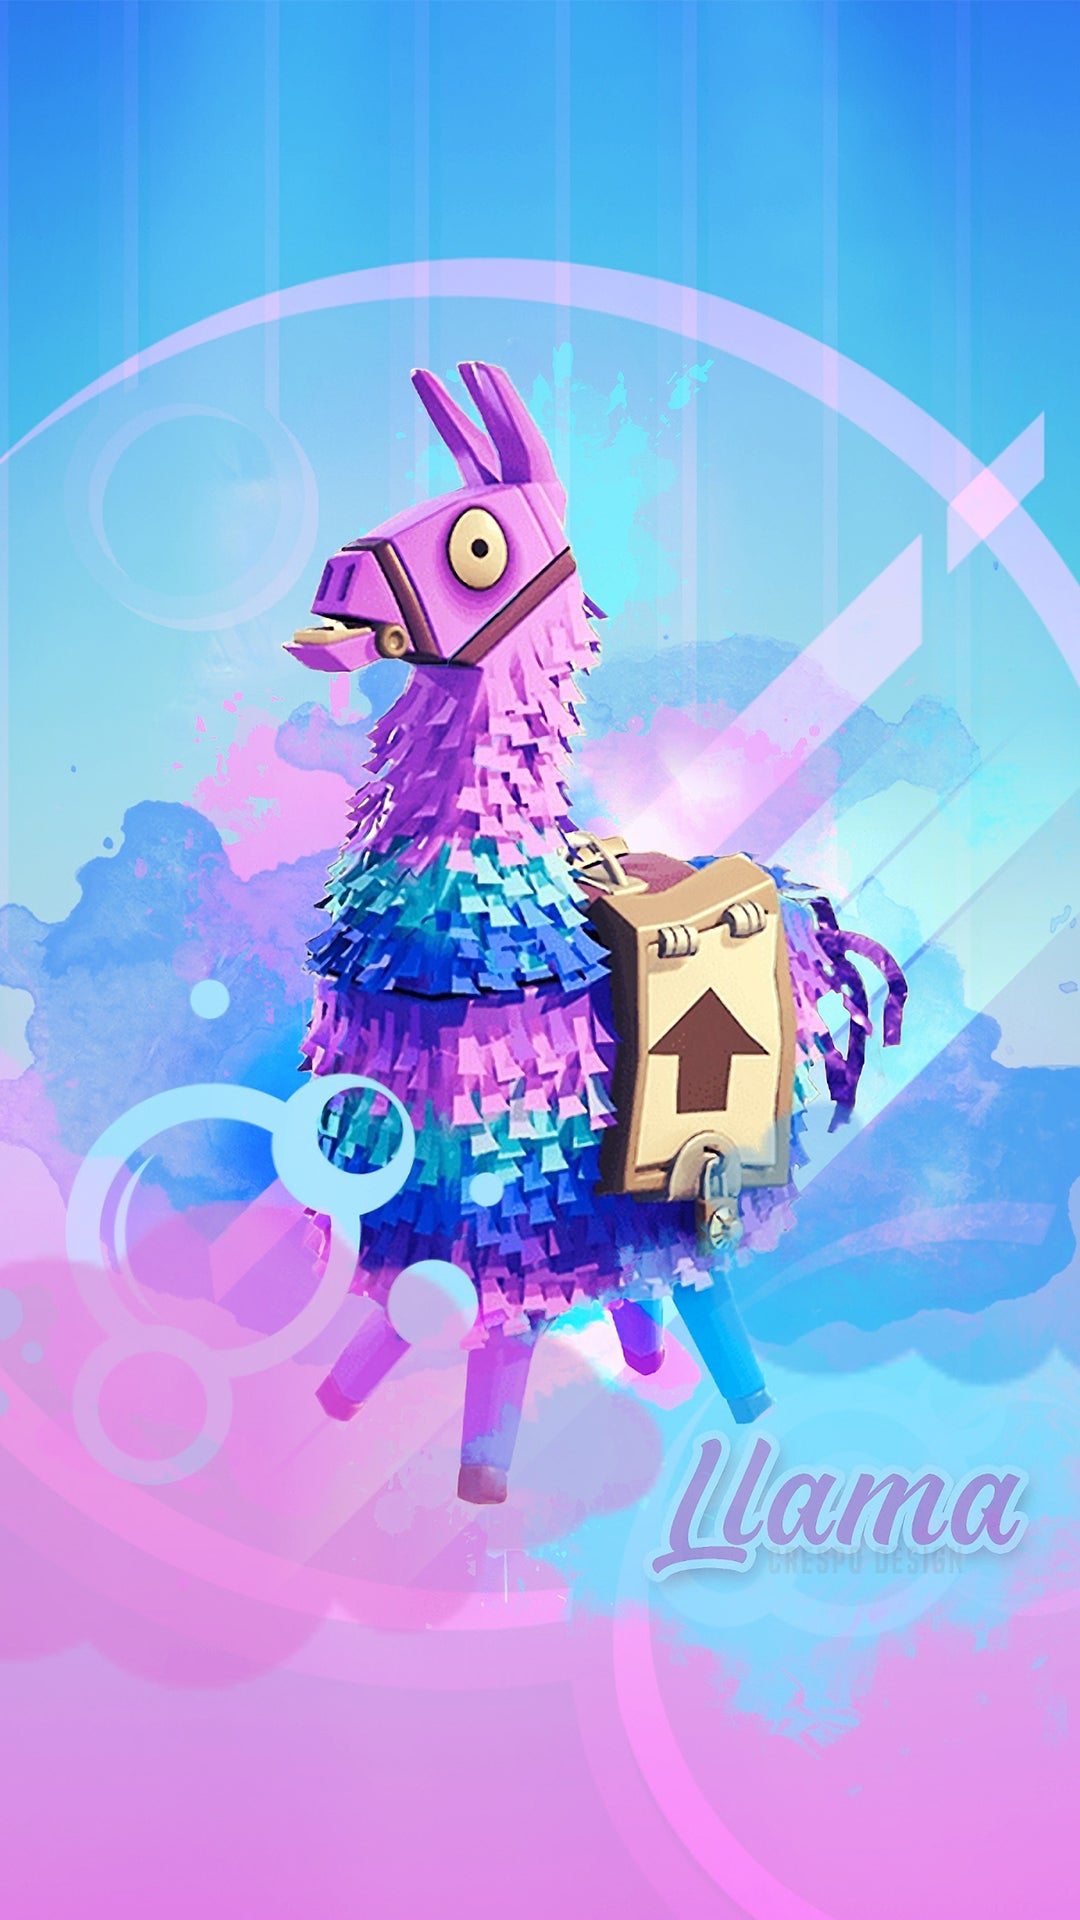 2019 Fortnite Llama Wallpaper Iphone Fortnite Costume For Kids